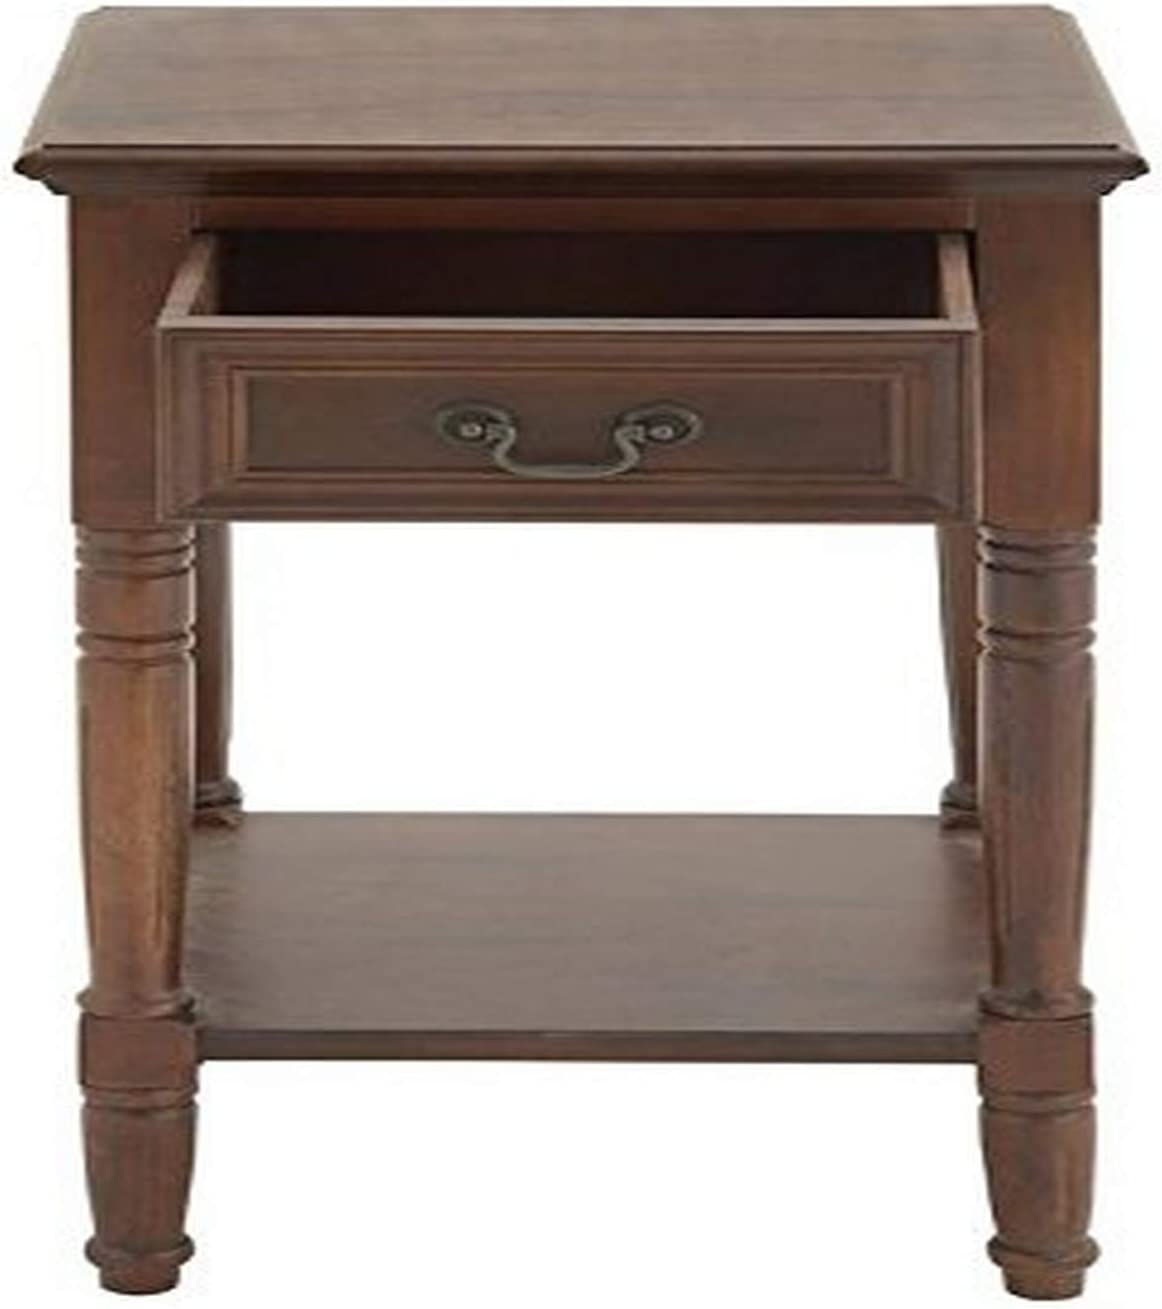 "Amazon.com: Mahogany Brown Wood Side Table with Drawer, 16"" x 29"